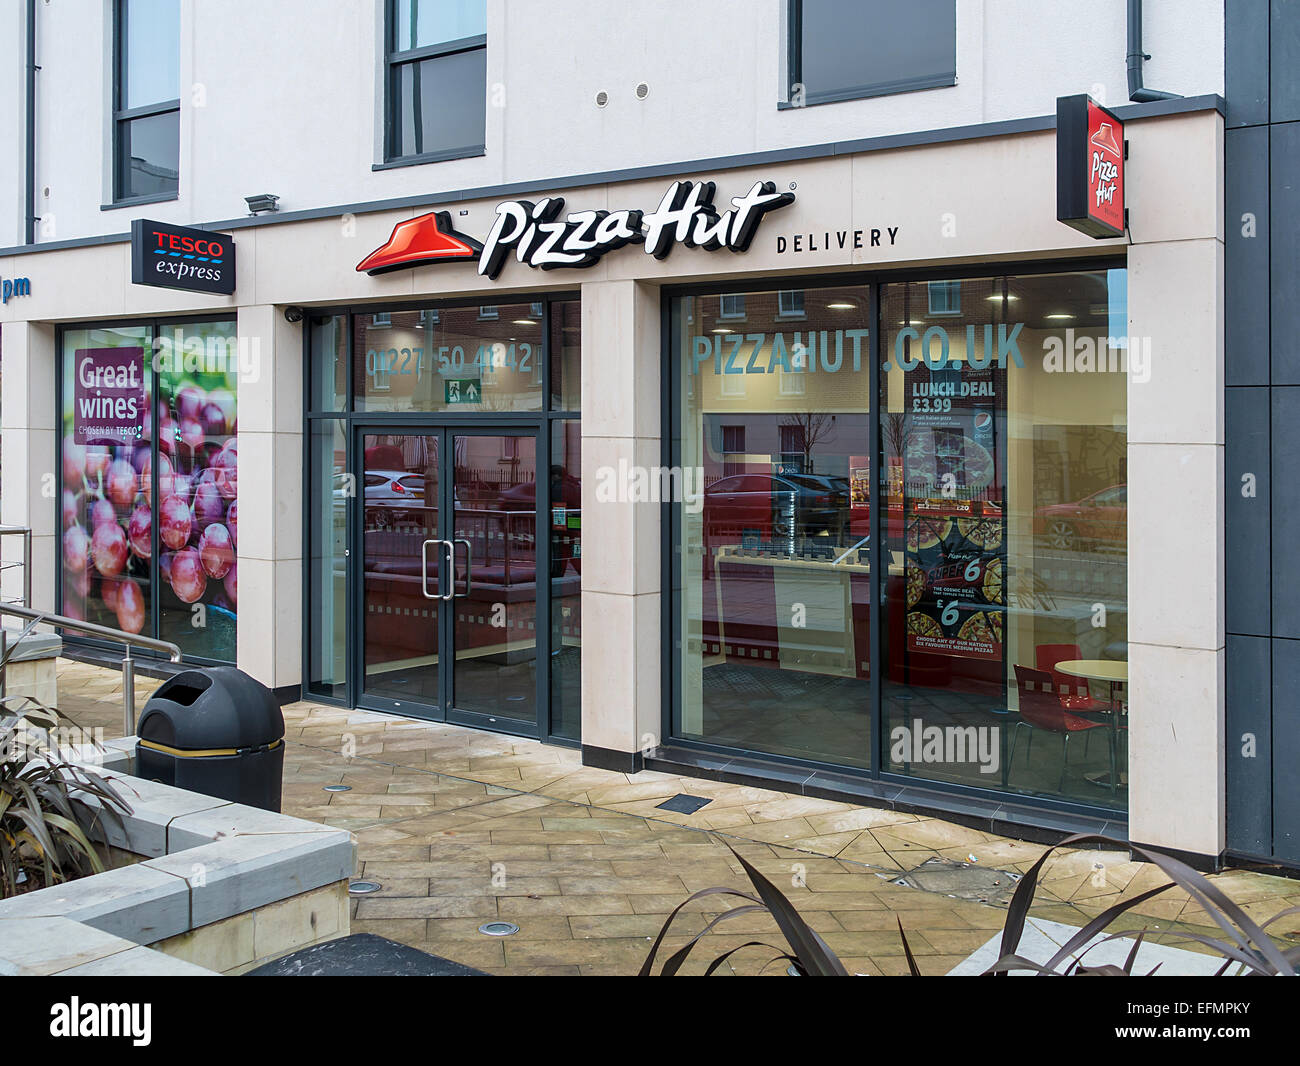 Pizza Hut Delivery Fast Food Outlet England Uk Stock Photo 78518159